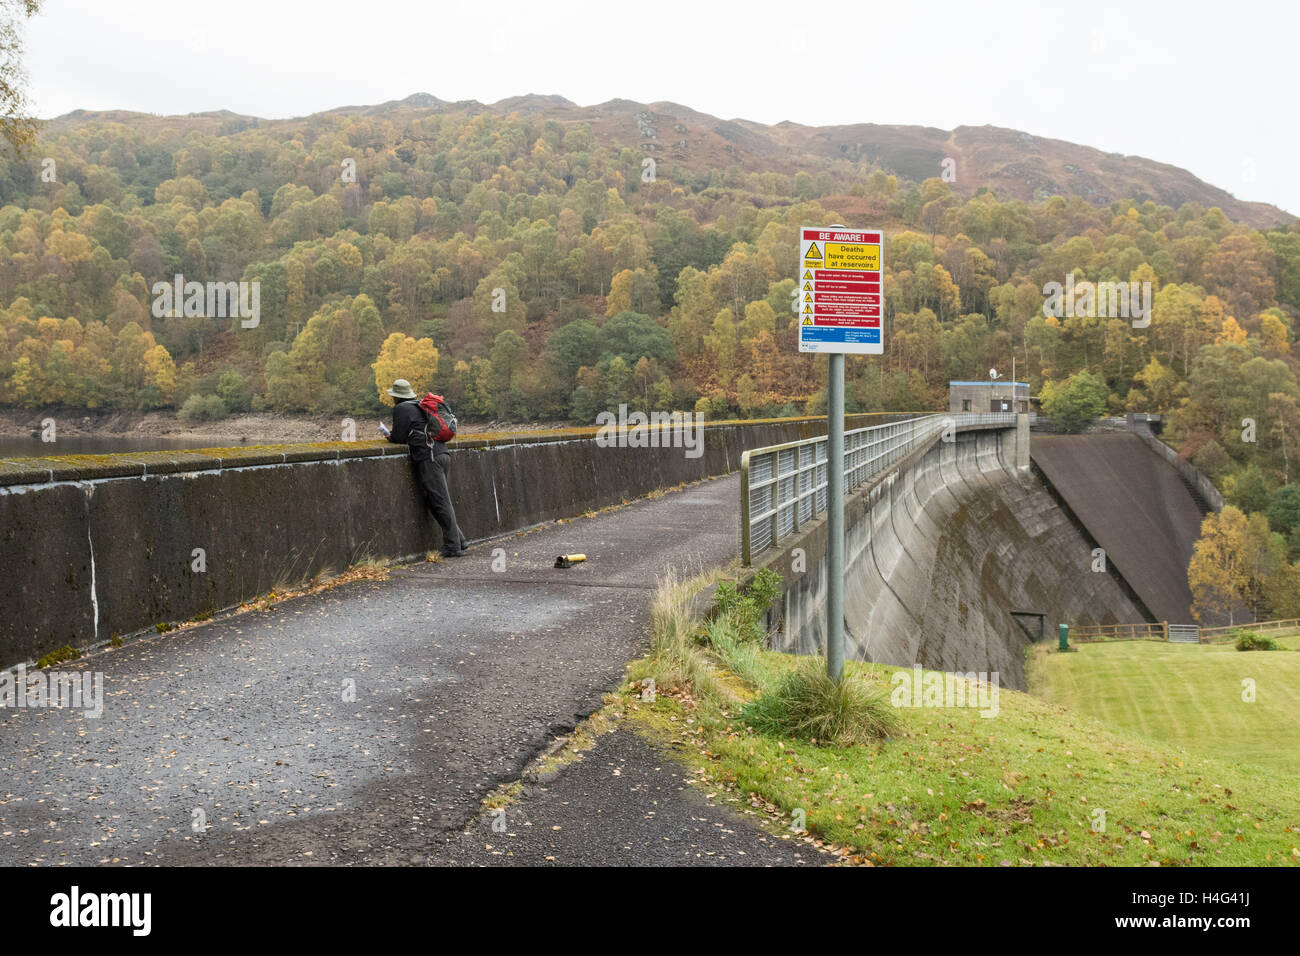 top of Glen Finglas Reservoir and 'deaths have occurred at reservoirs' warning sign, Glen Finglas, Trossachs, Scotland, Stock Photo